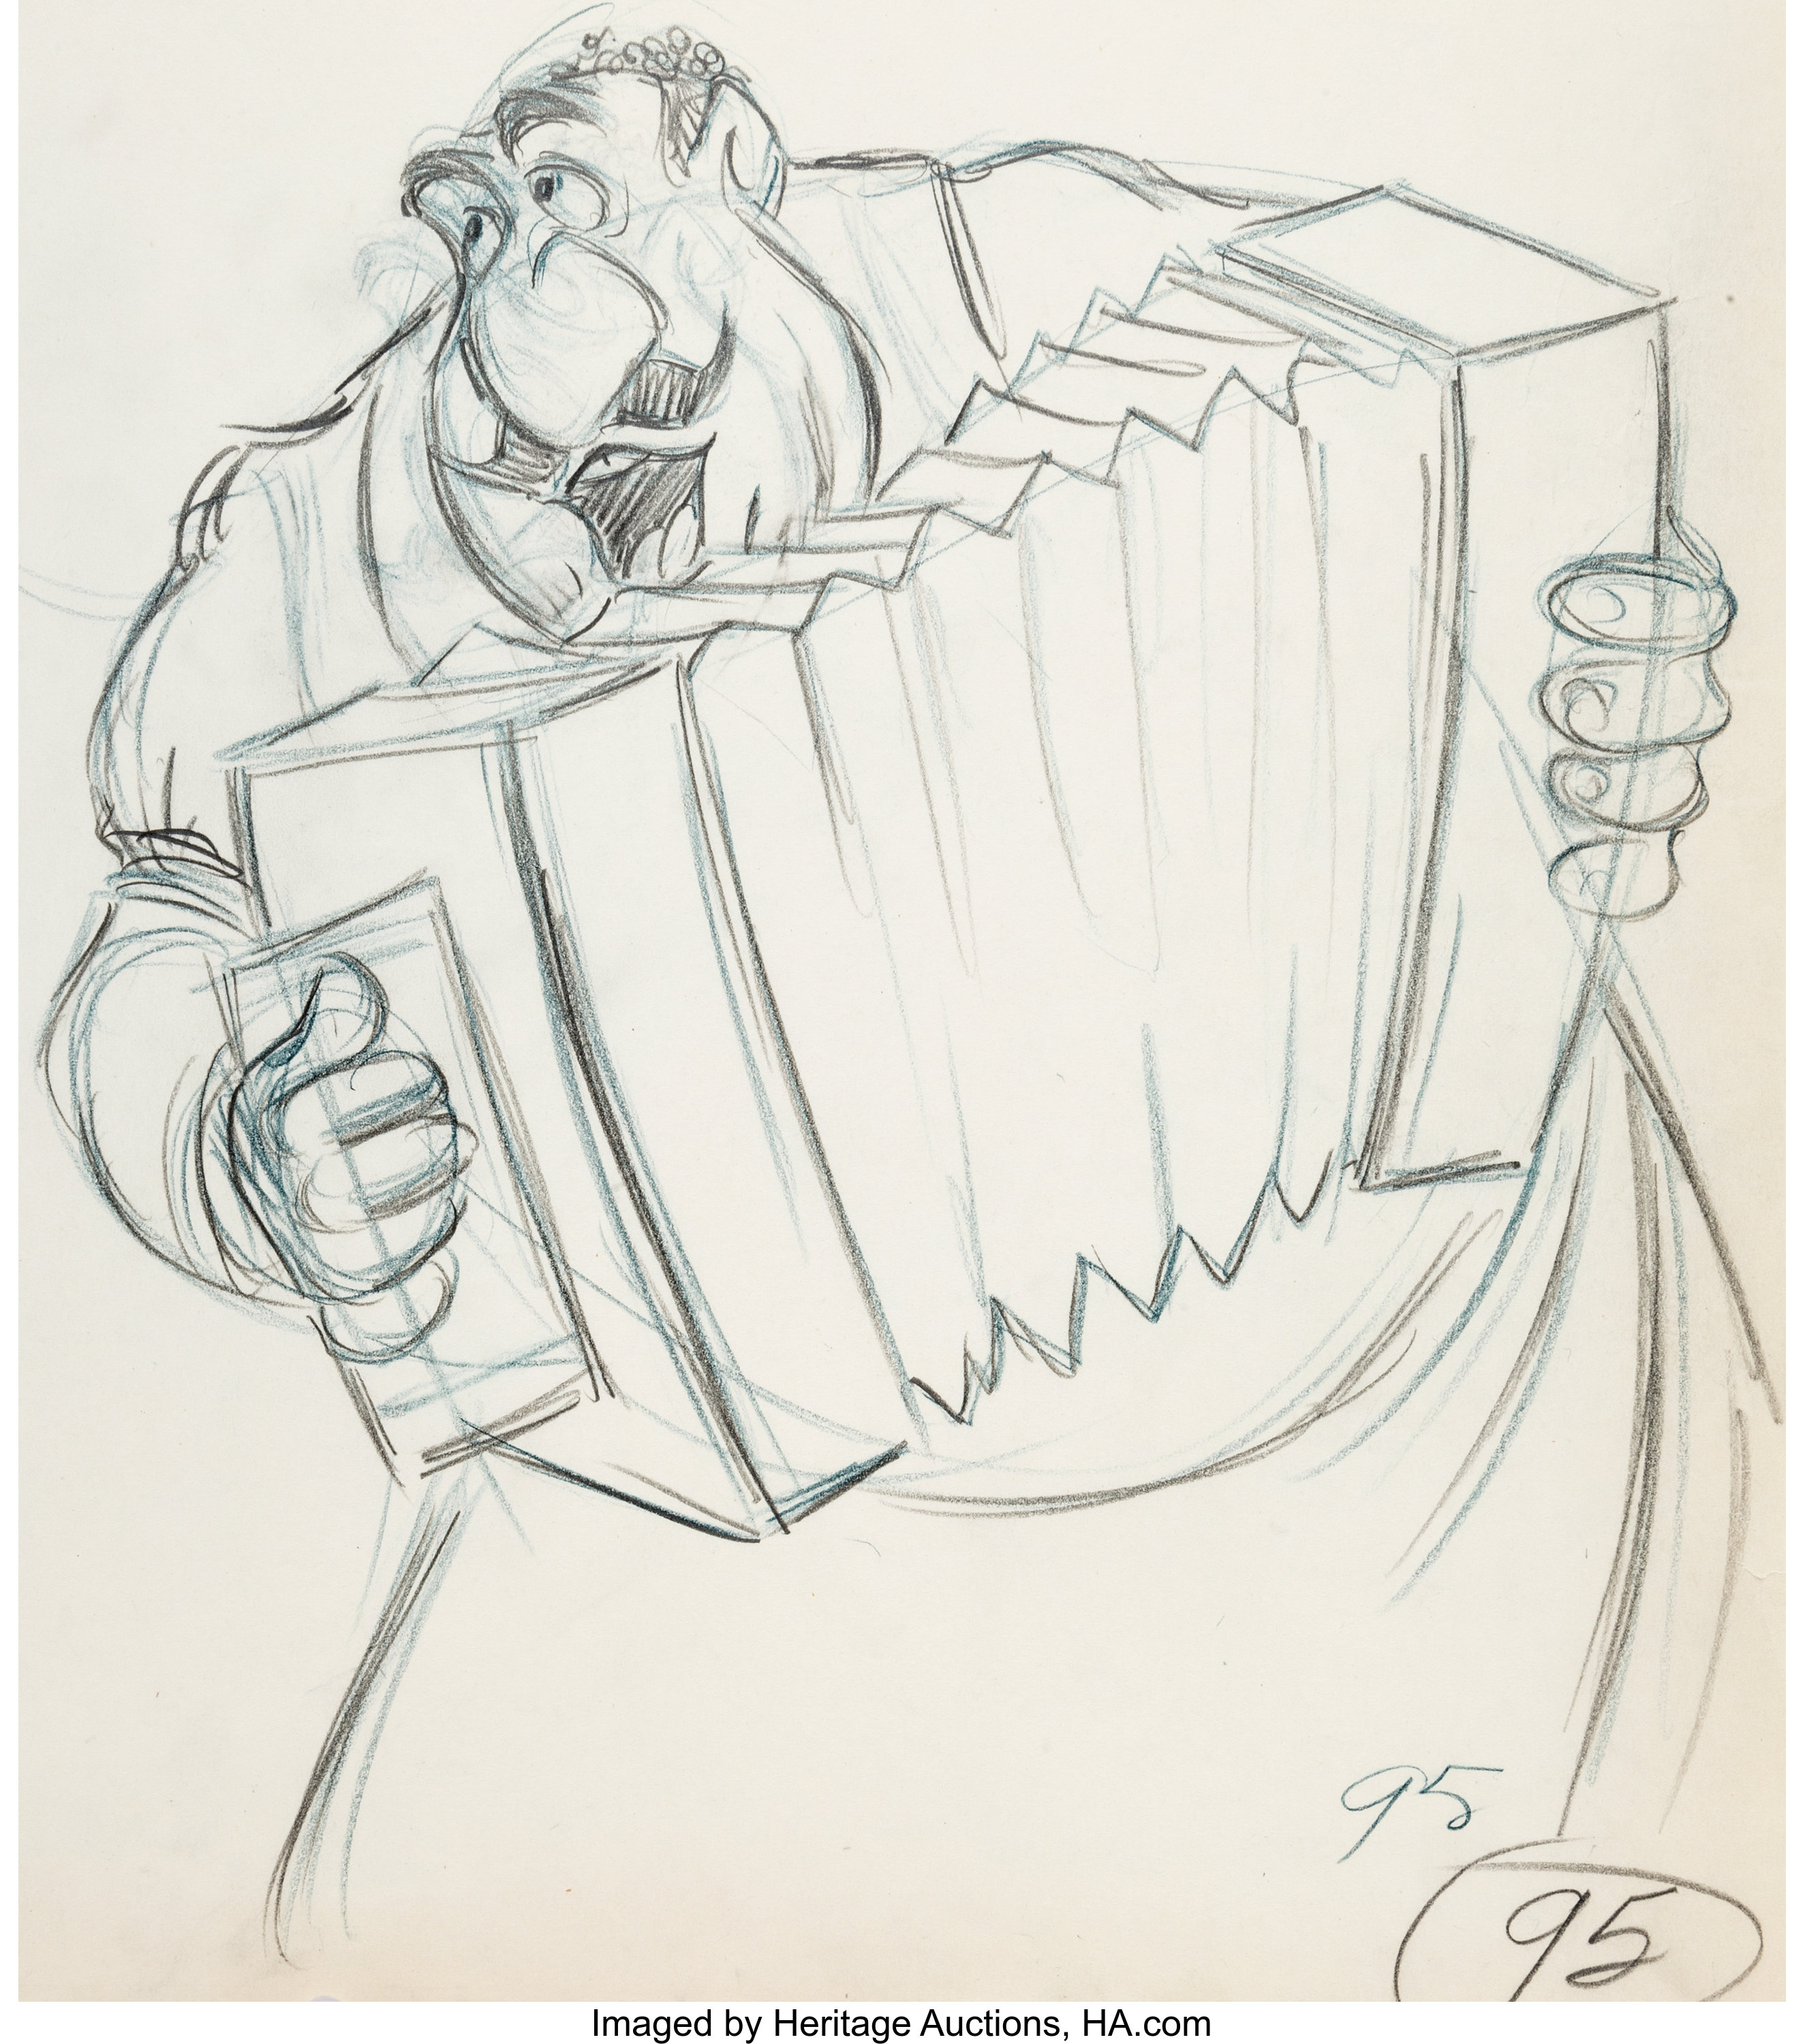 Lady And The Tramp Tony Animation Drawing Walt Disney 1955 Lot 97195 Heritage Auctions